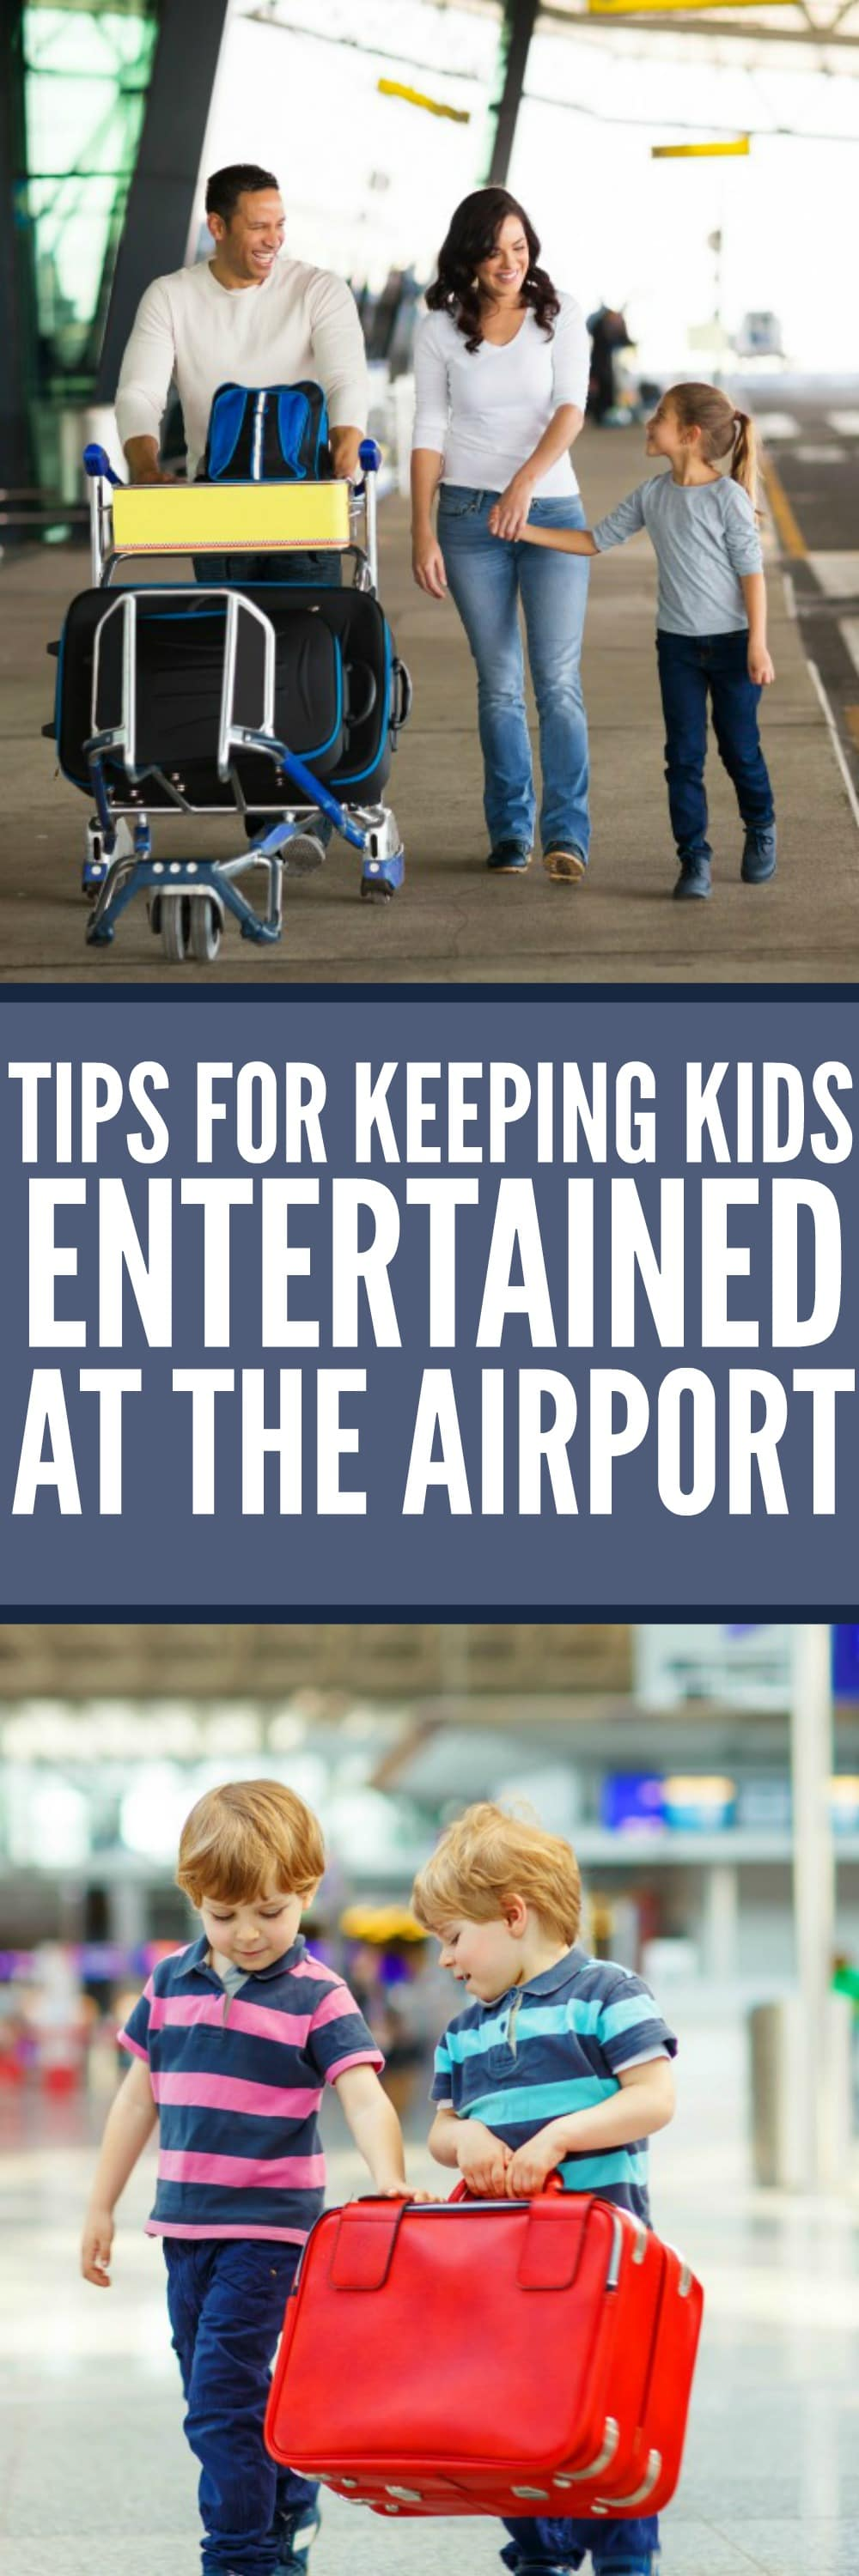 Tips for Keeping Kids Entertained at the Airport